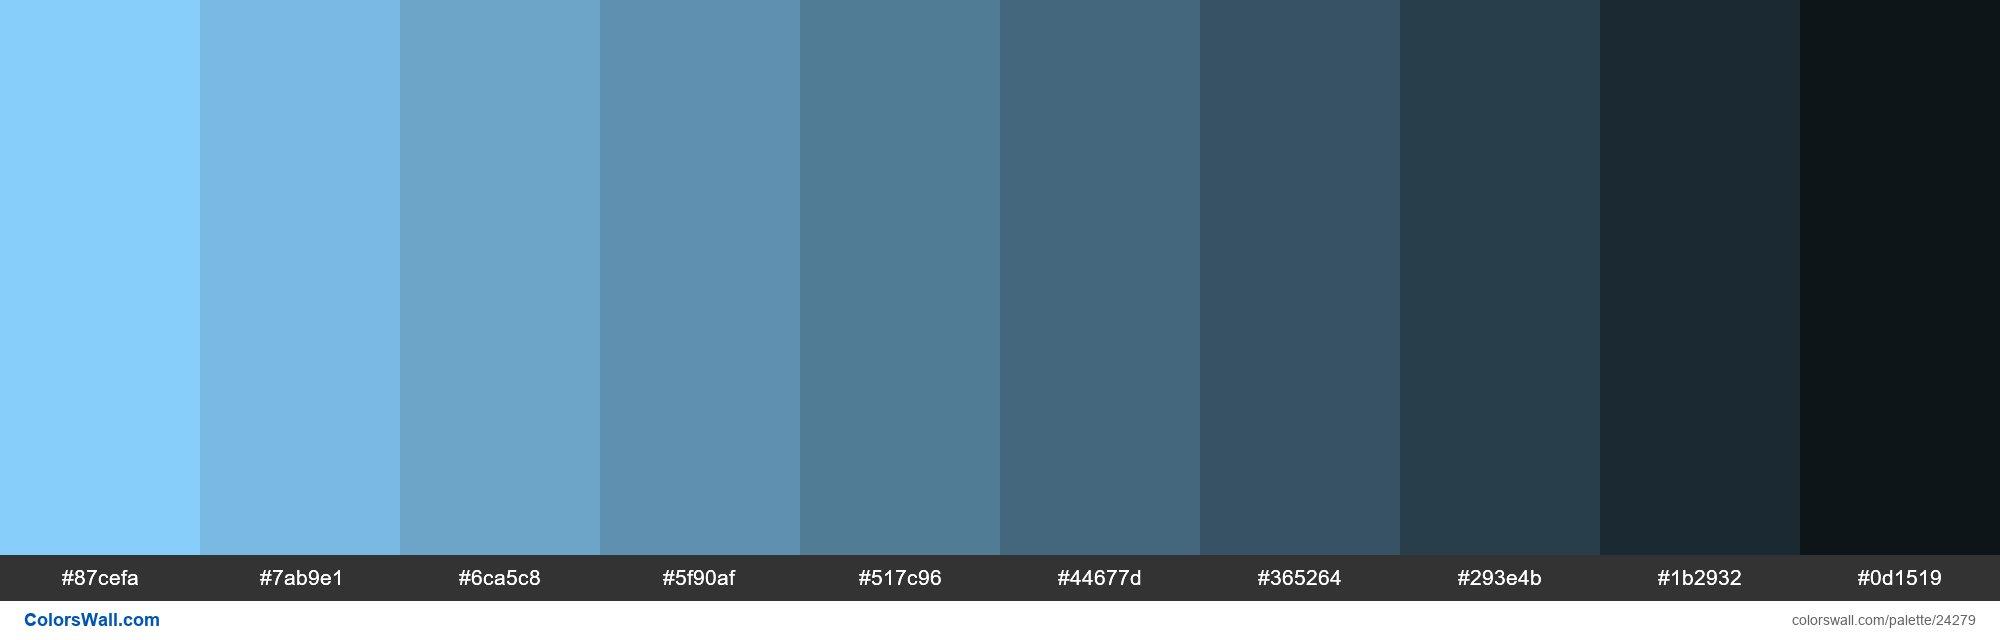 Shades of Light Sky Blue #87CEFA hex color - #24279